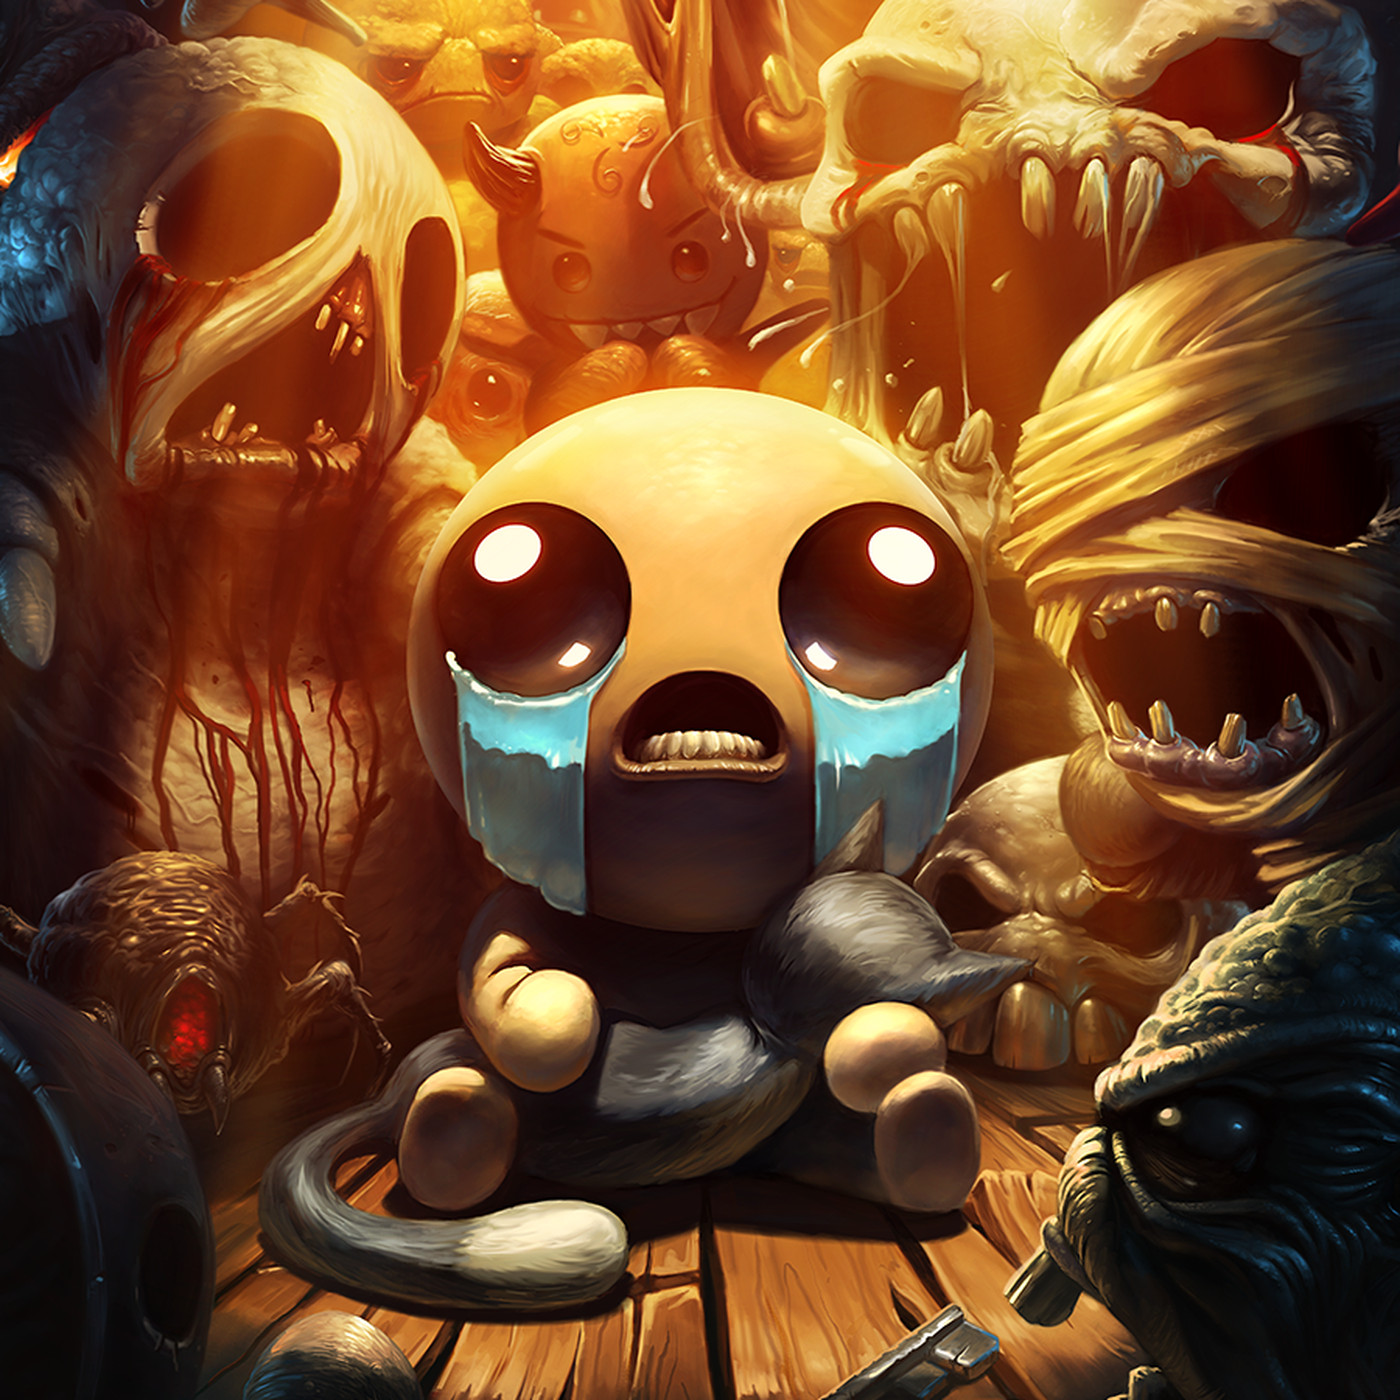 The Binding of Isaac: Repentance DLC could release this December